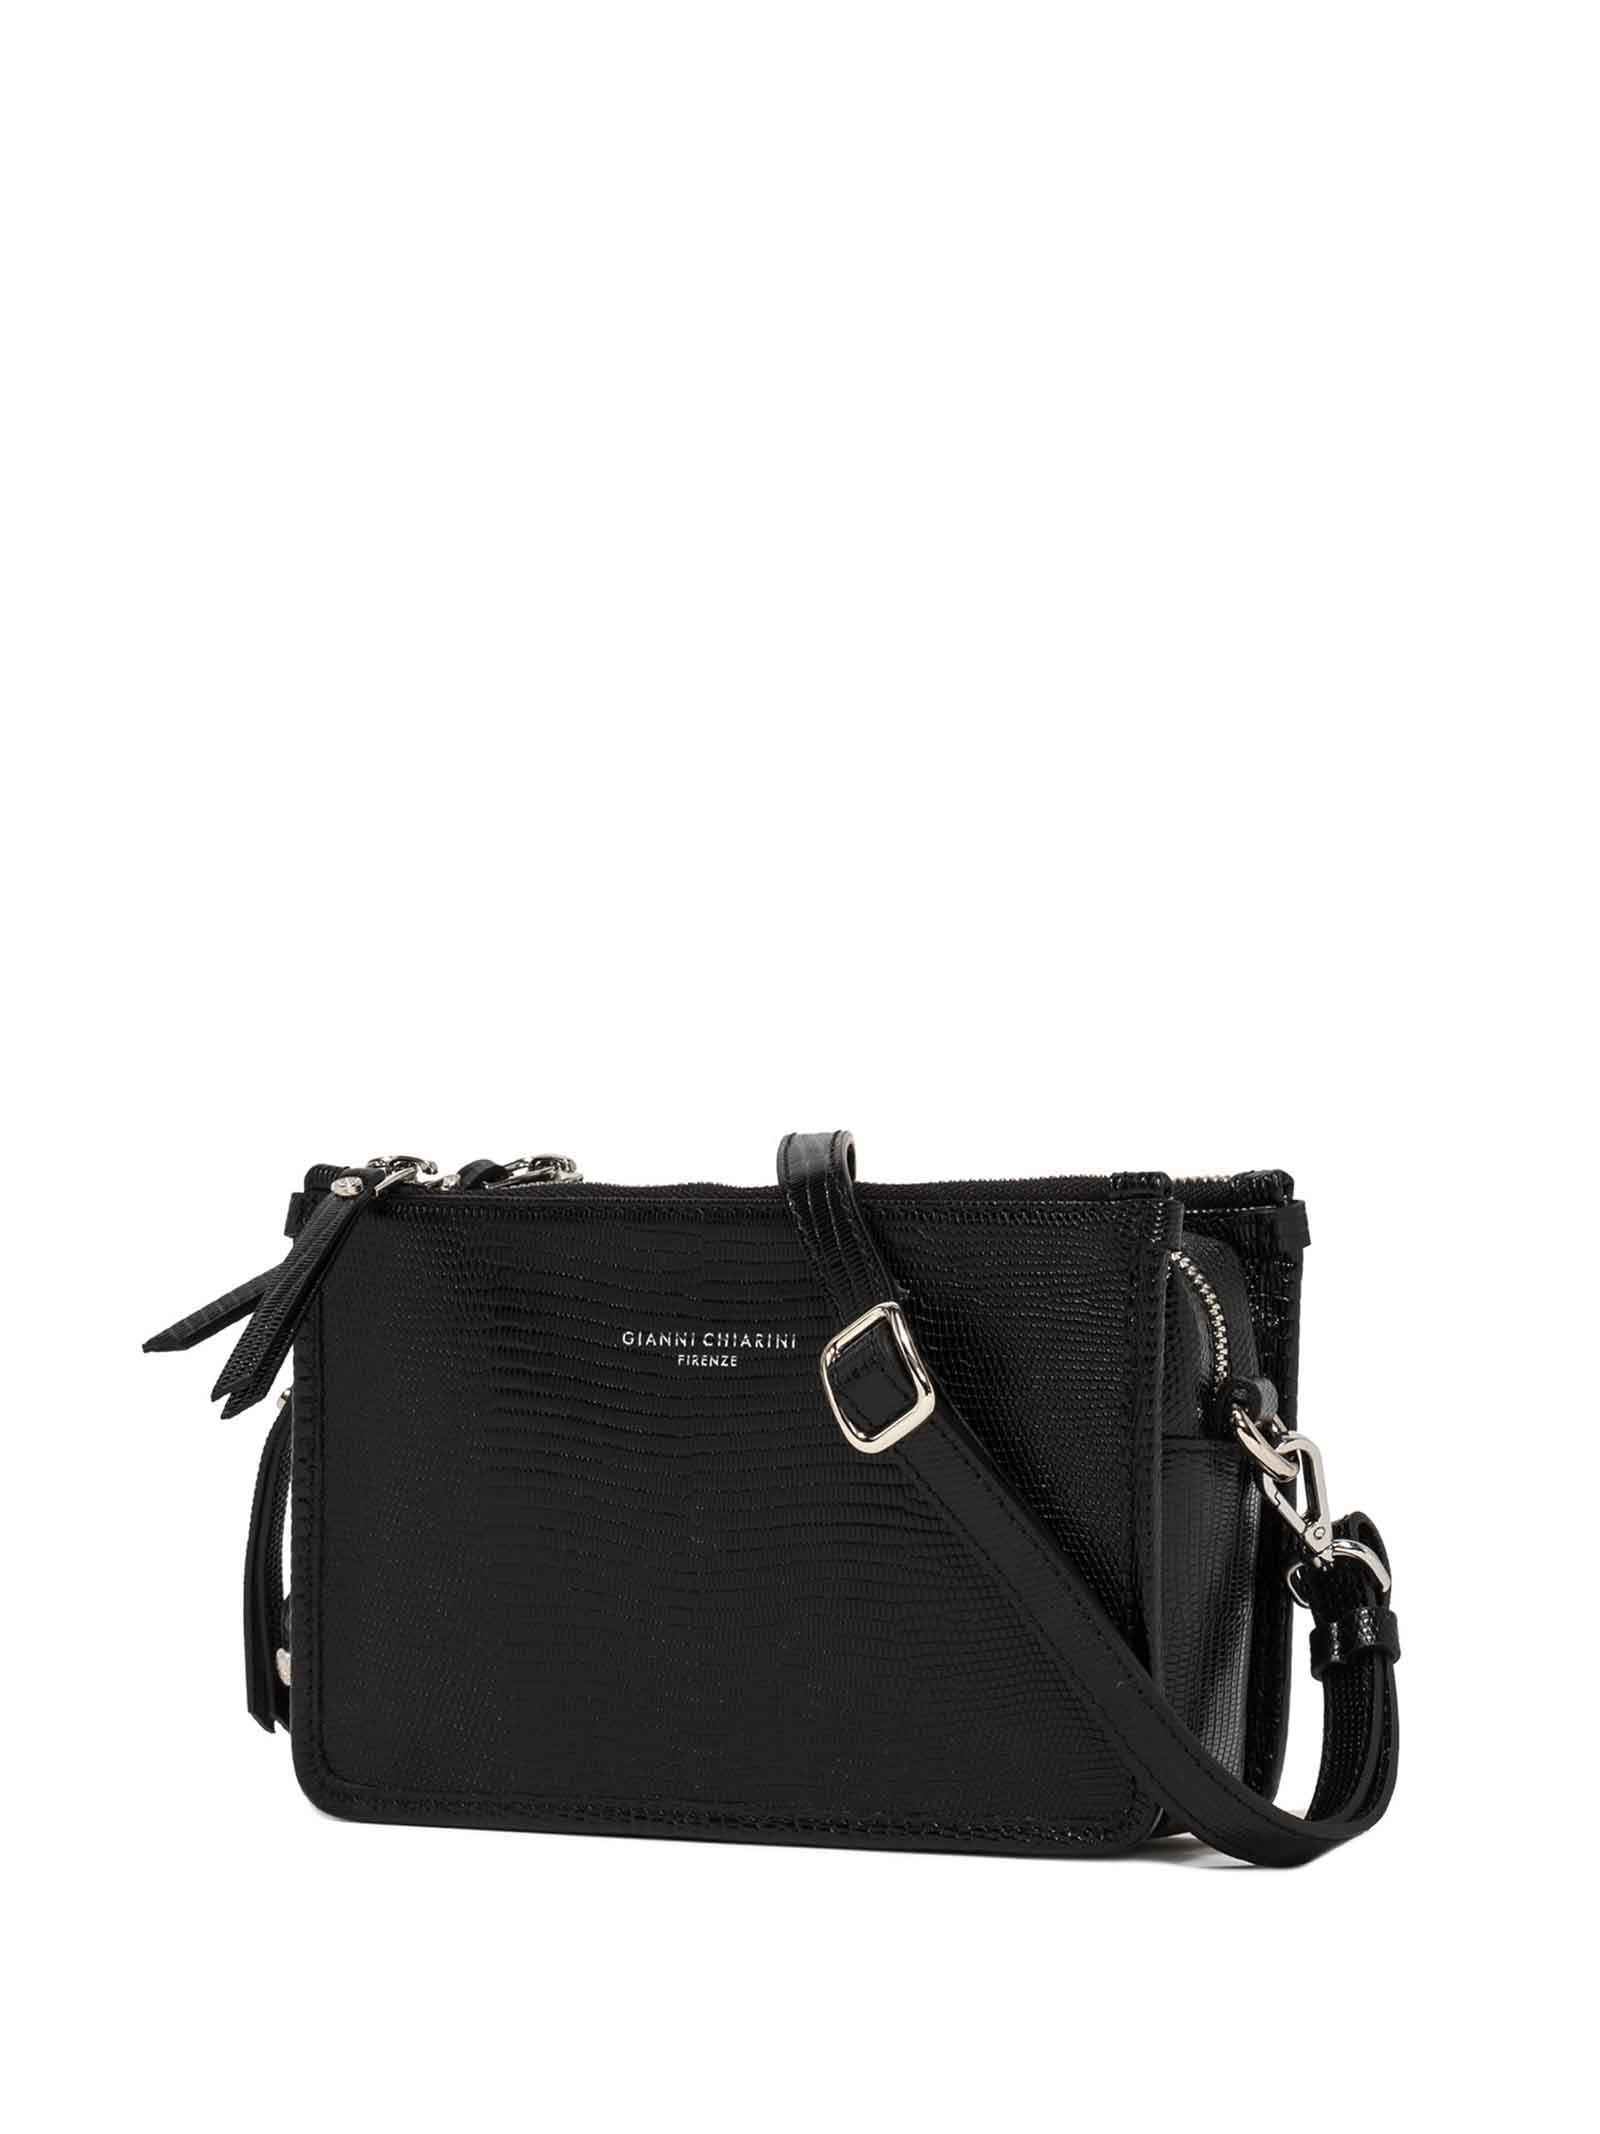 Women's Clutch Bag Debbie in Black Tejus Printed Leather with Adjustable and Detachable Tone Shoulder Strap Gianni Chiarini | Bags and backpacks | BS8790001